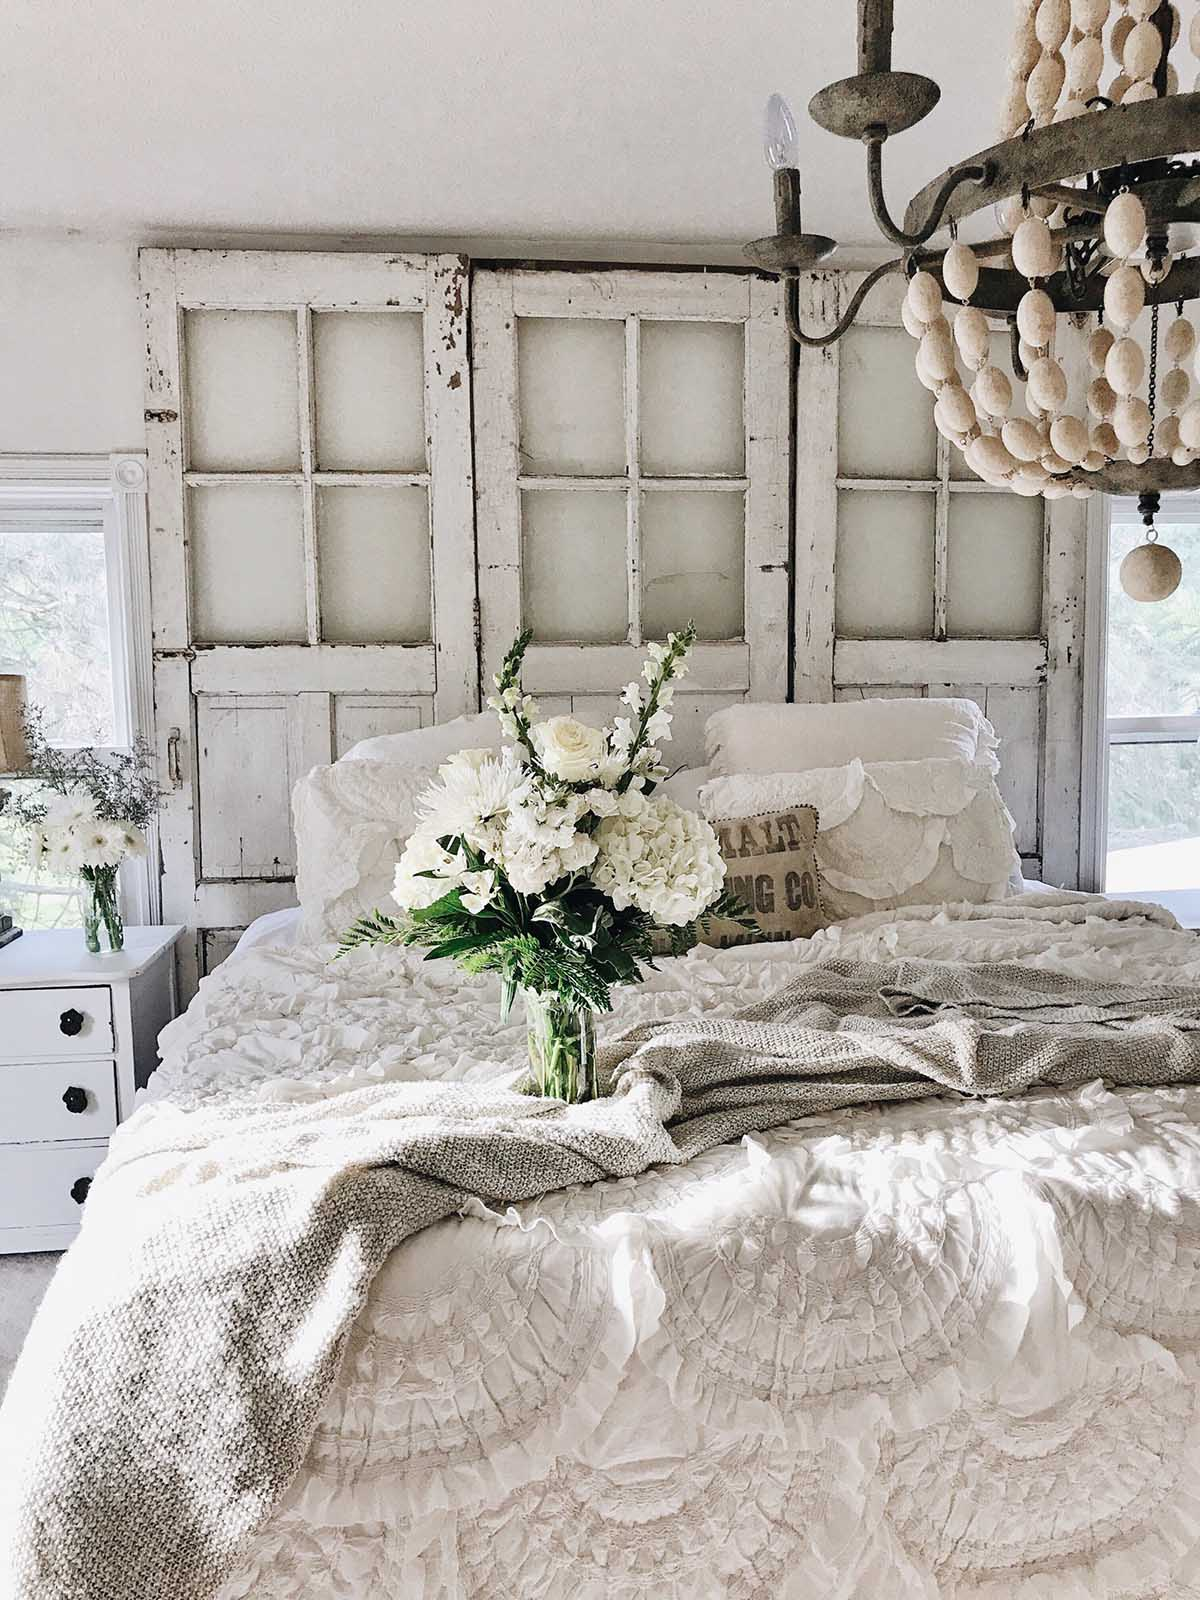 Slaapkamer Inrichting Landelijk 30 Best French Country Bedroom Decor And Design Ideas For 2019